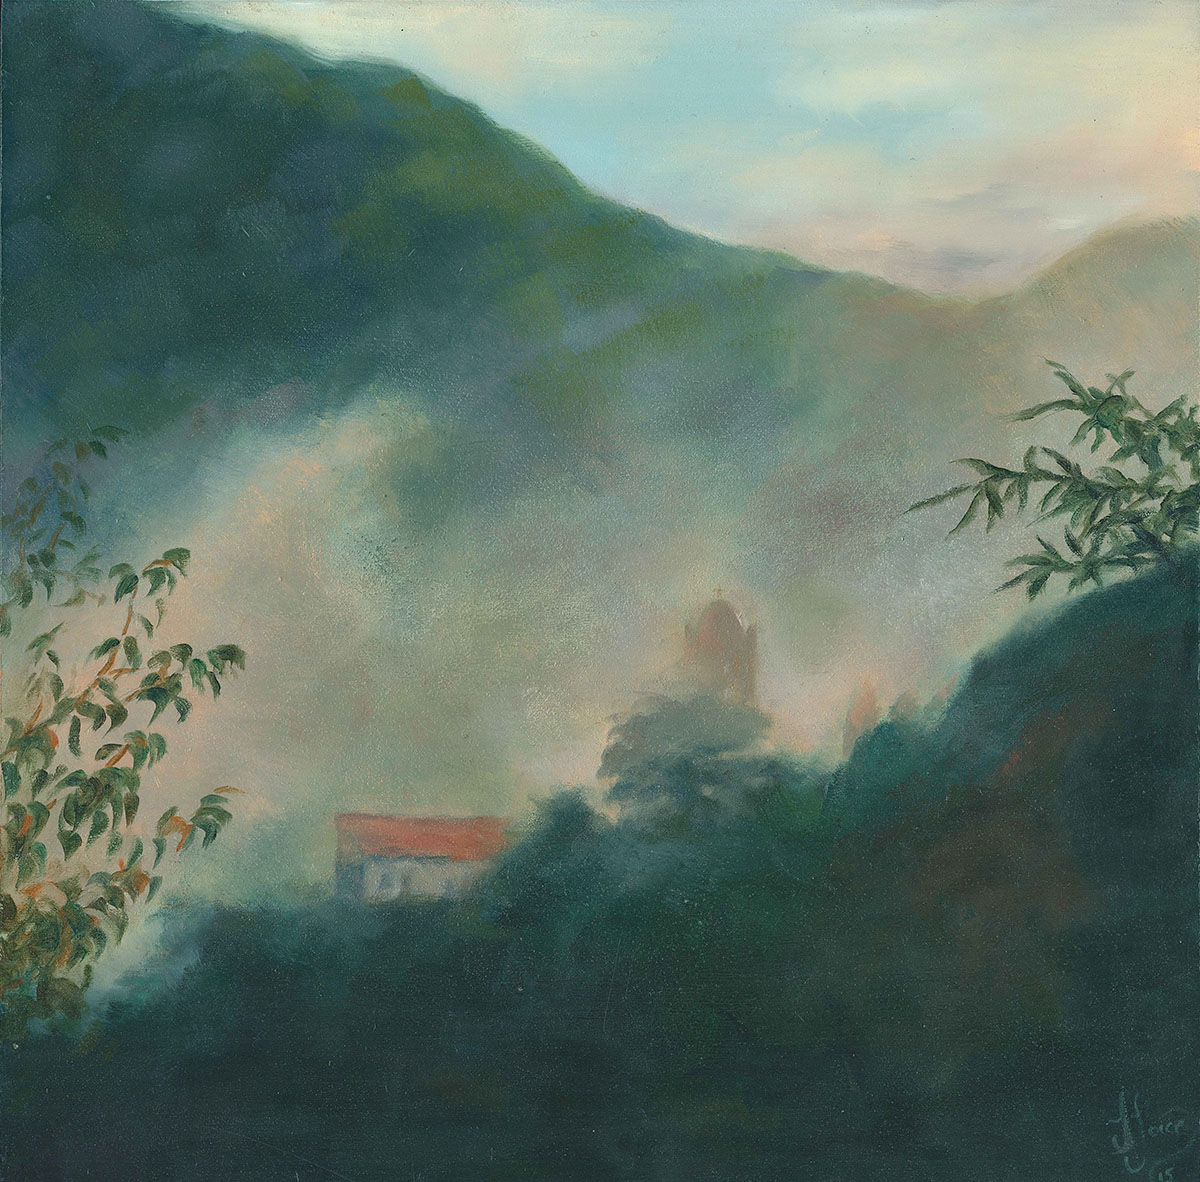 Evening Mist after the Storm, Stazzema - Oil on wood - 30 x 30 cm